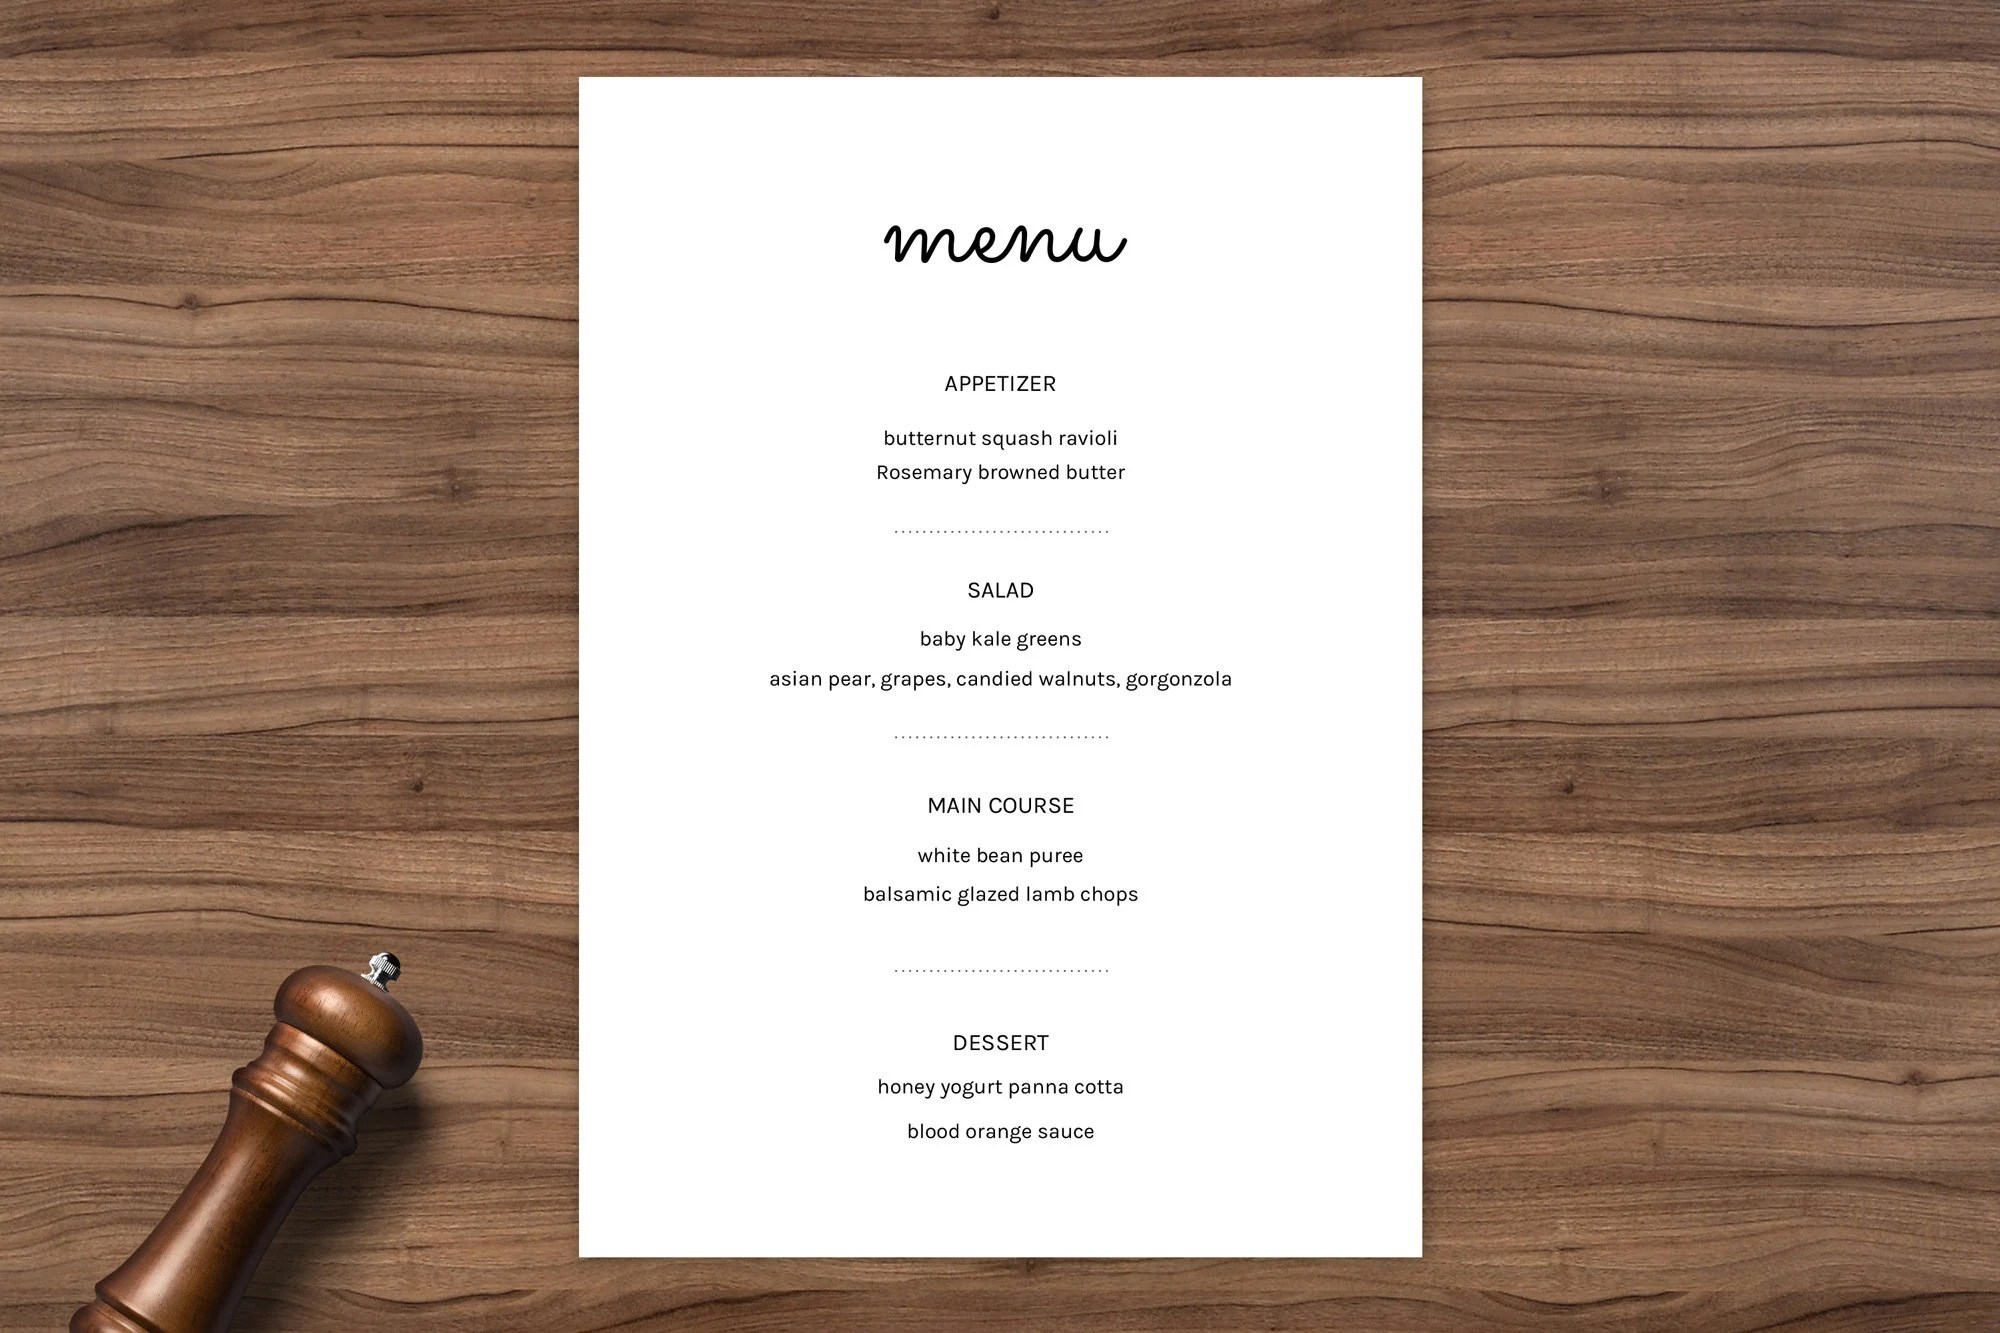 Banquet Menu Menu template wedding menu catering menu Etsy